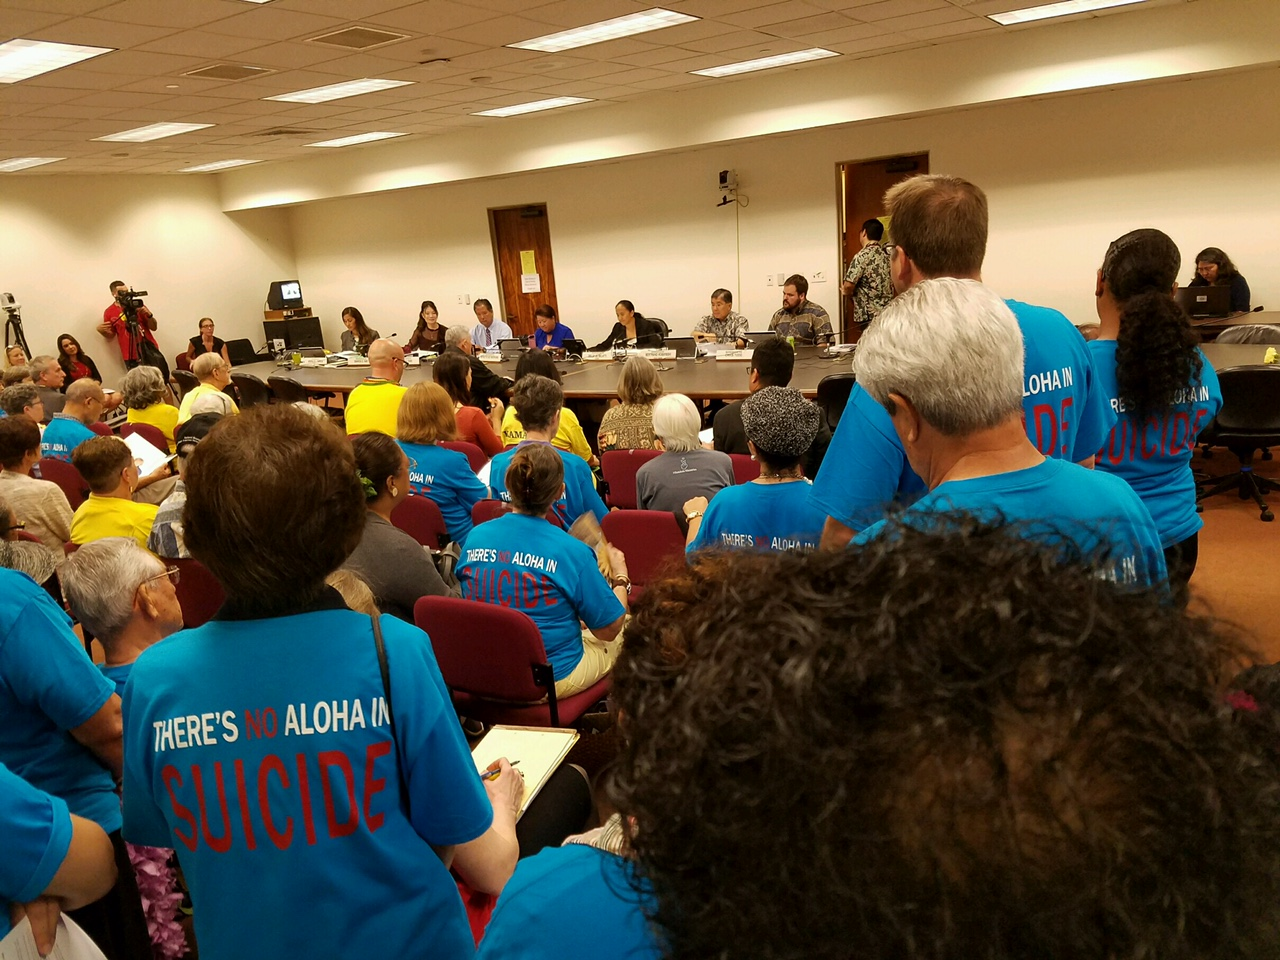 Blue Shirts Dominate Hearing